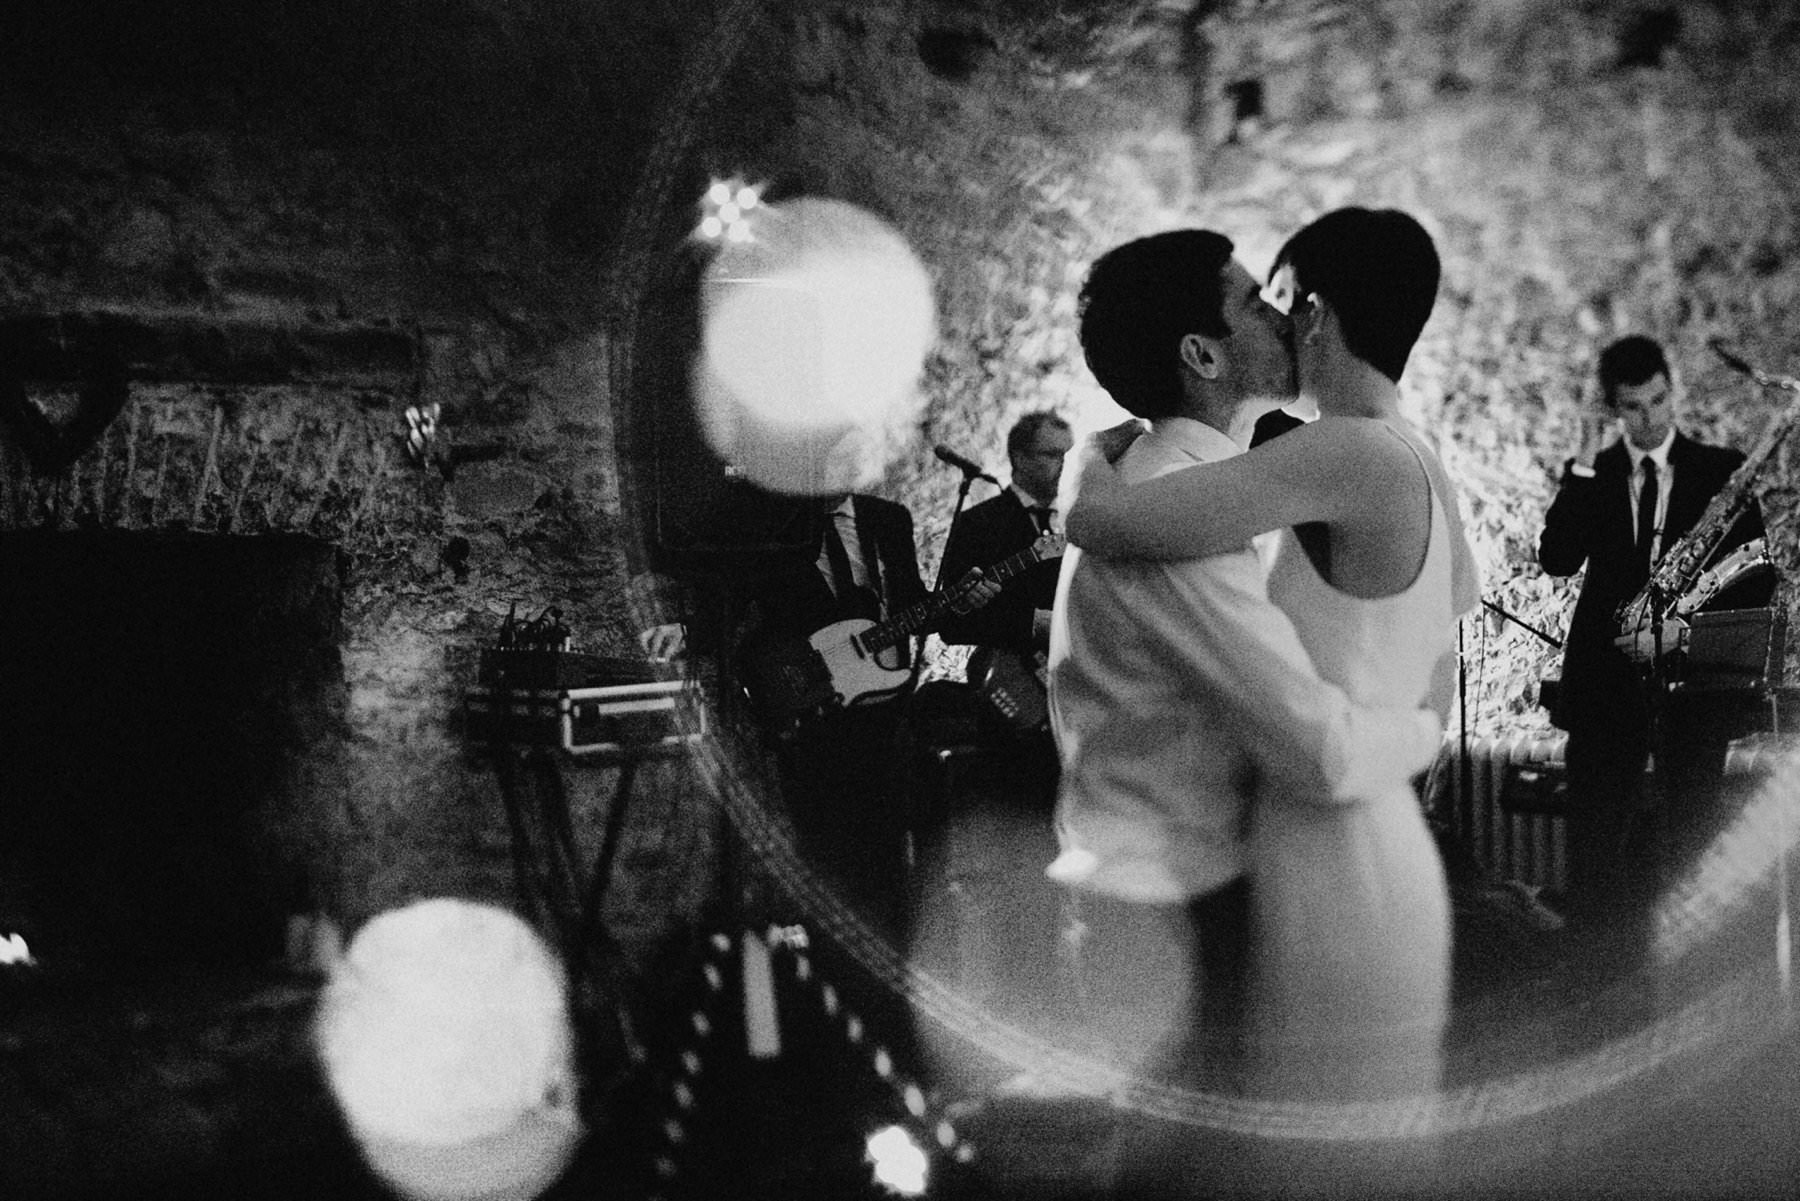 irish wedding photographer based in Belfast northern ireland